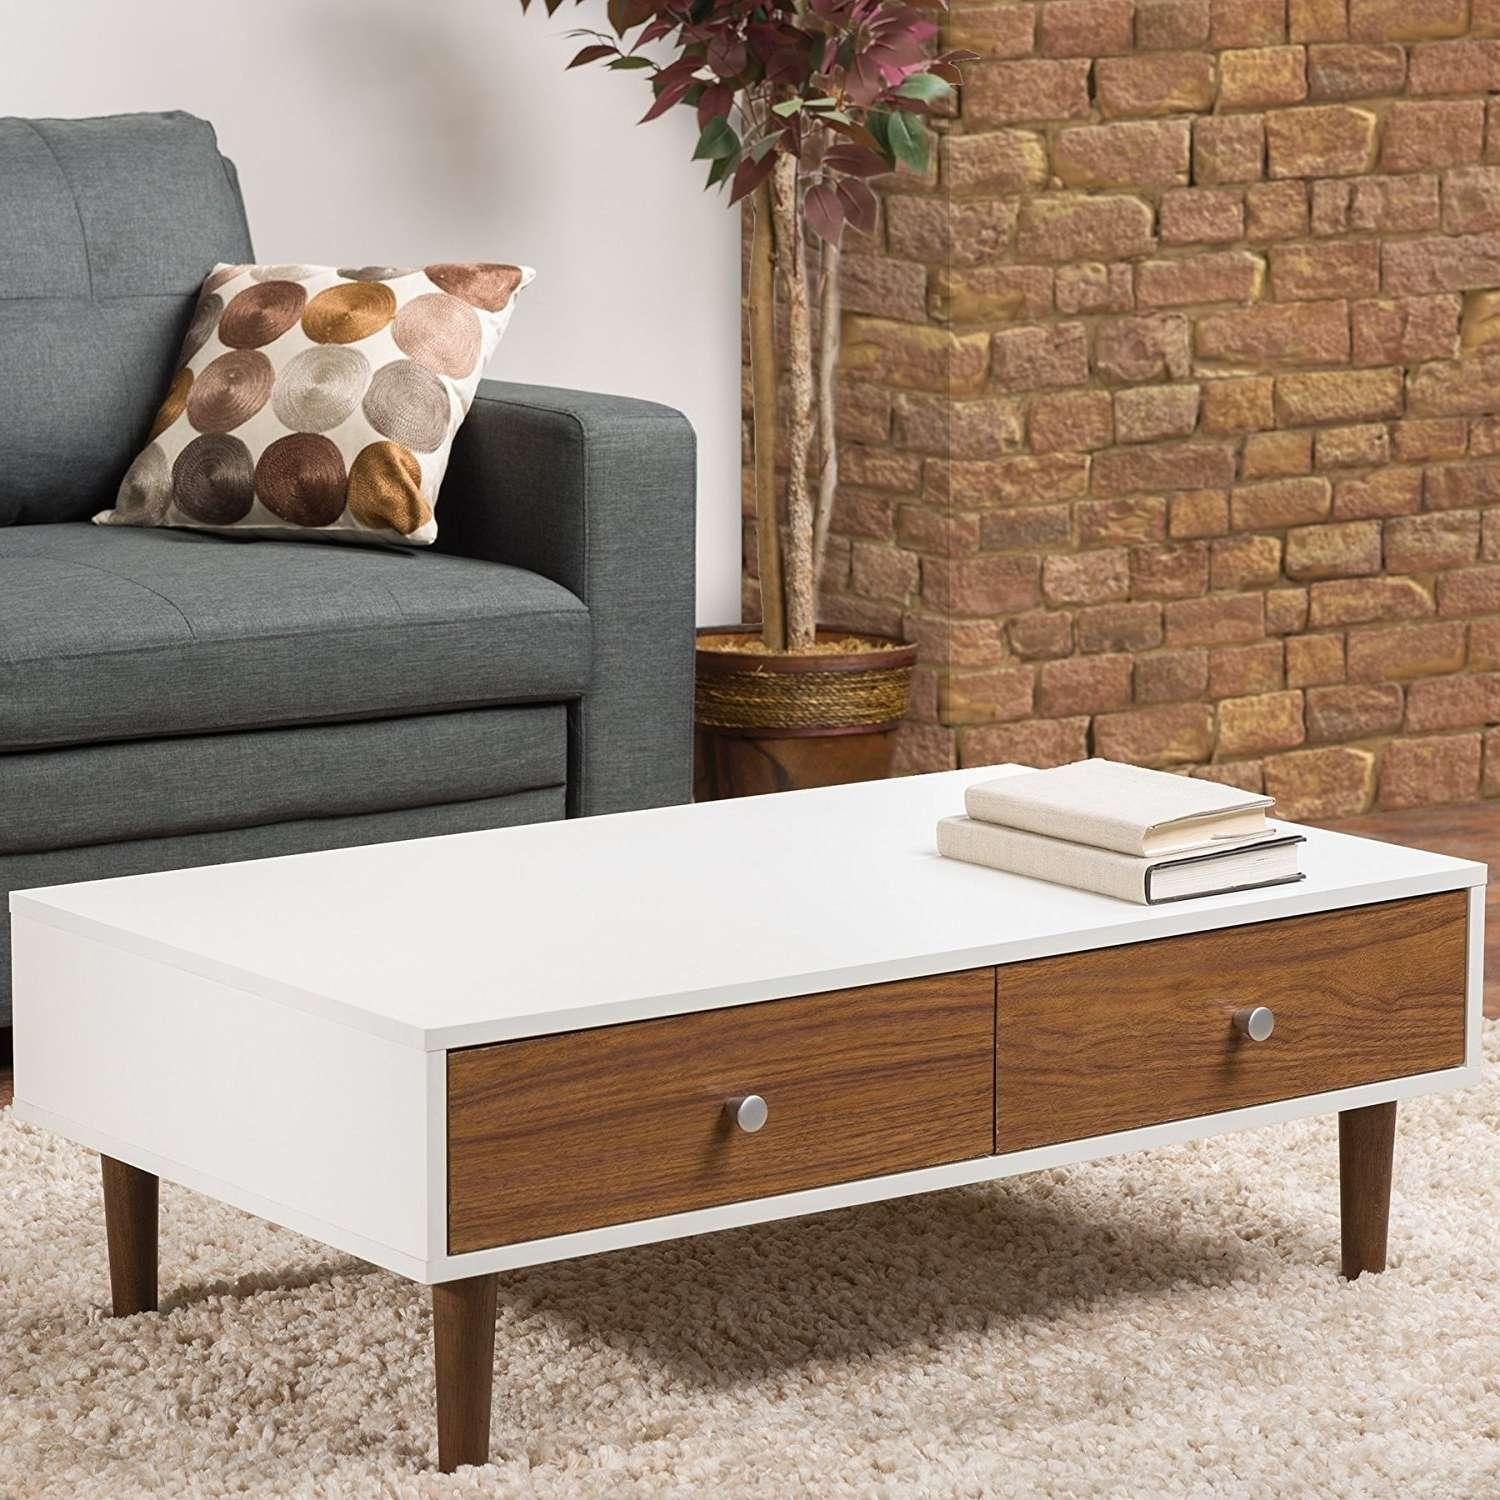 Coffee Table Amazing Coffee Table With Storage Small Coffee Inside In Fashionable Cheap Coffee Tables With Storage (View 7 of 20)